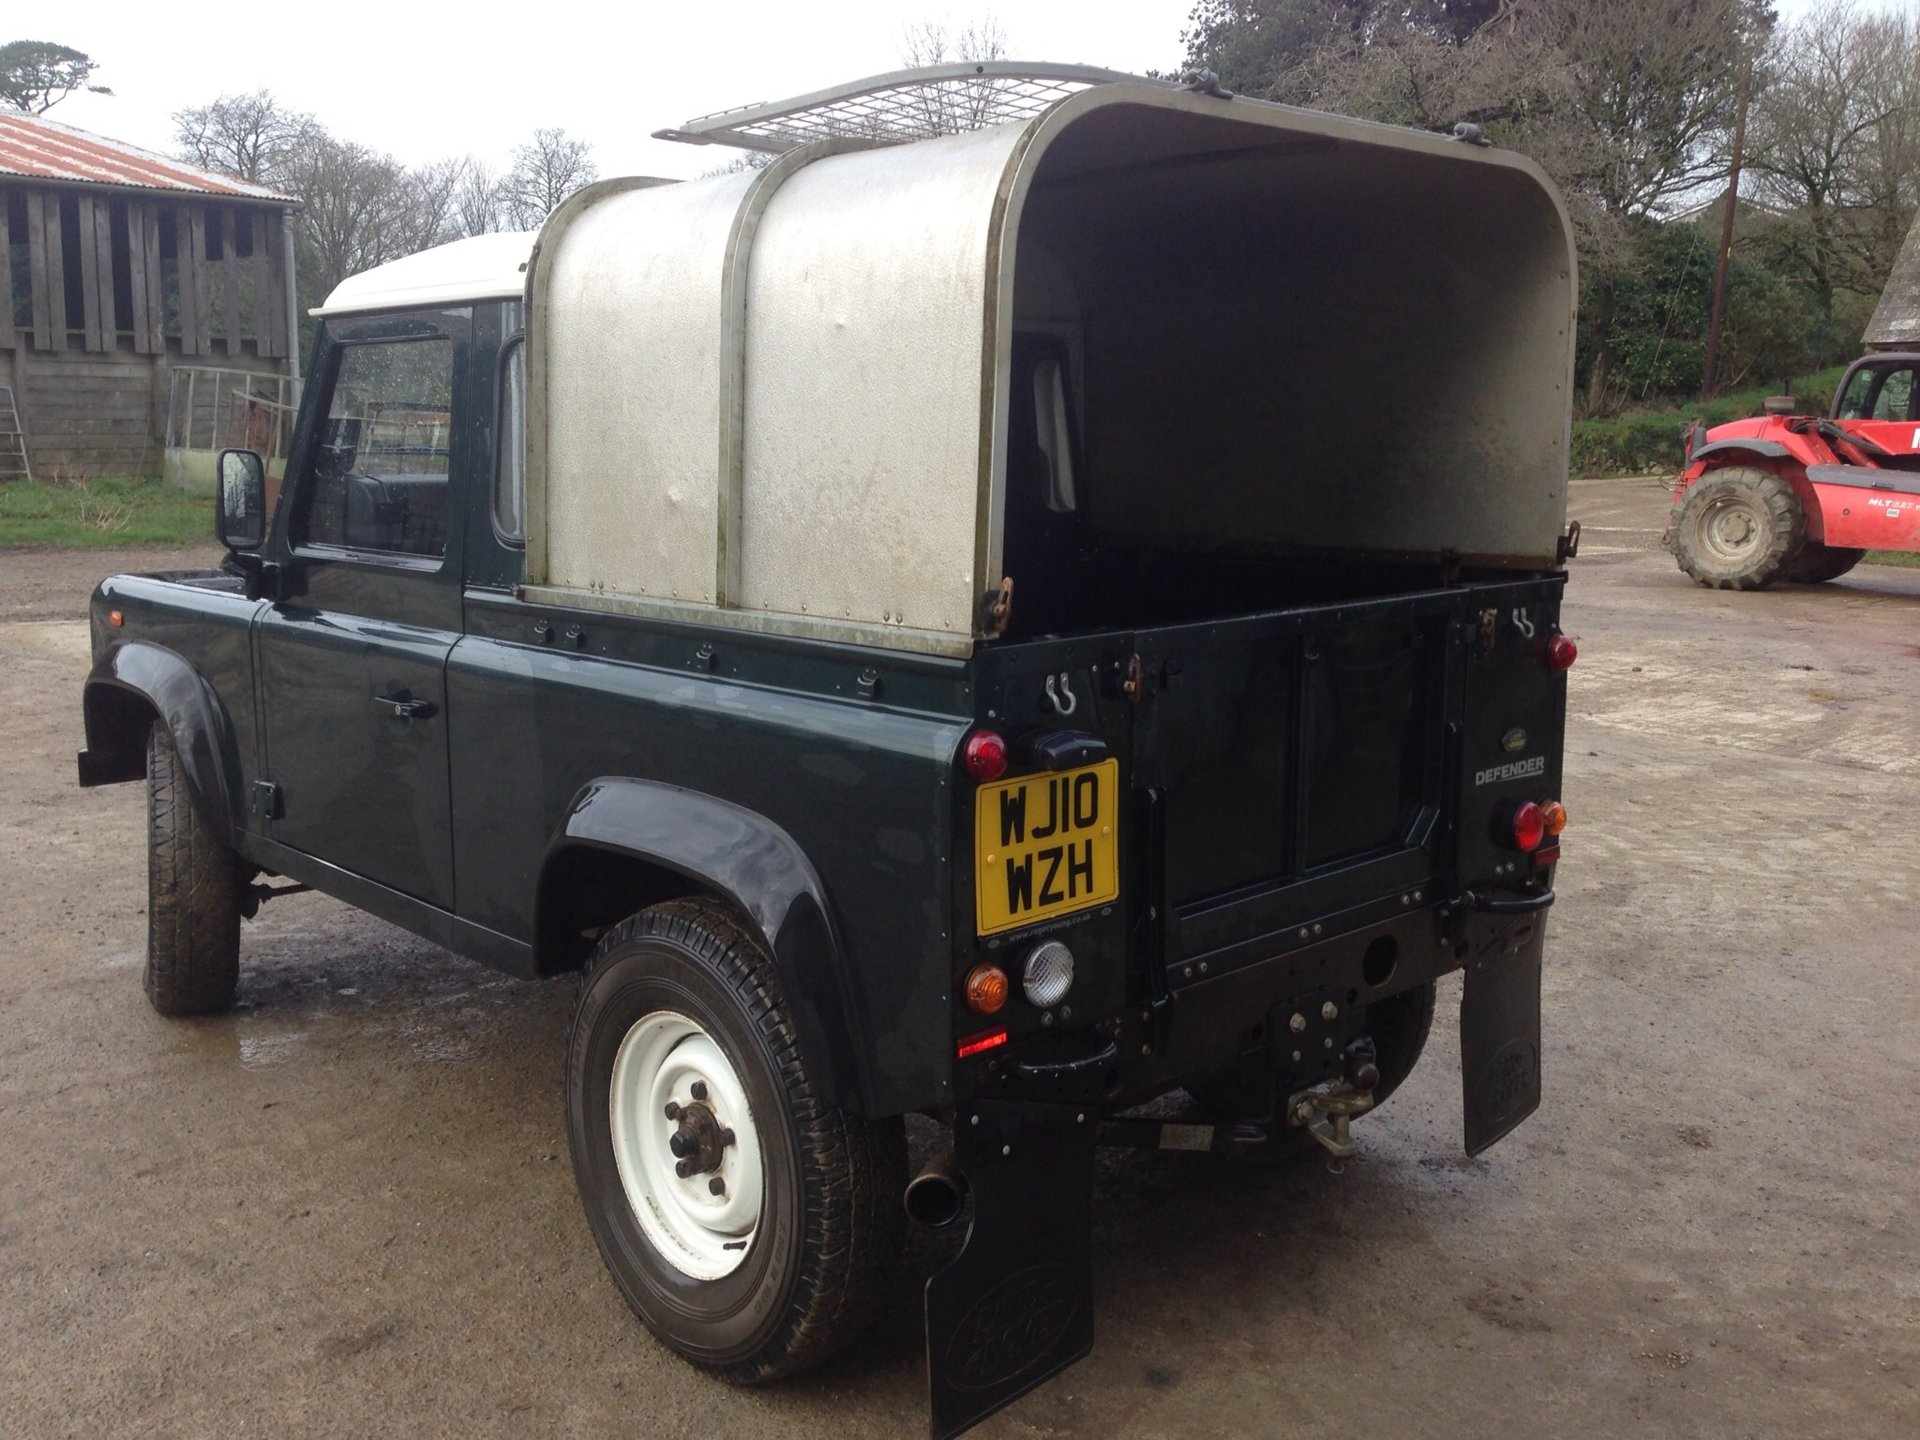 2010 Land Rover Defender 90 Pick Up The Farming Forum